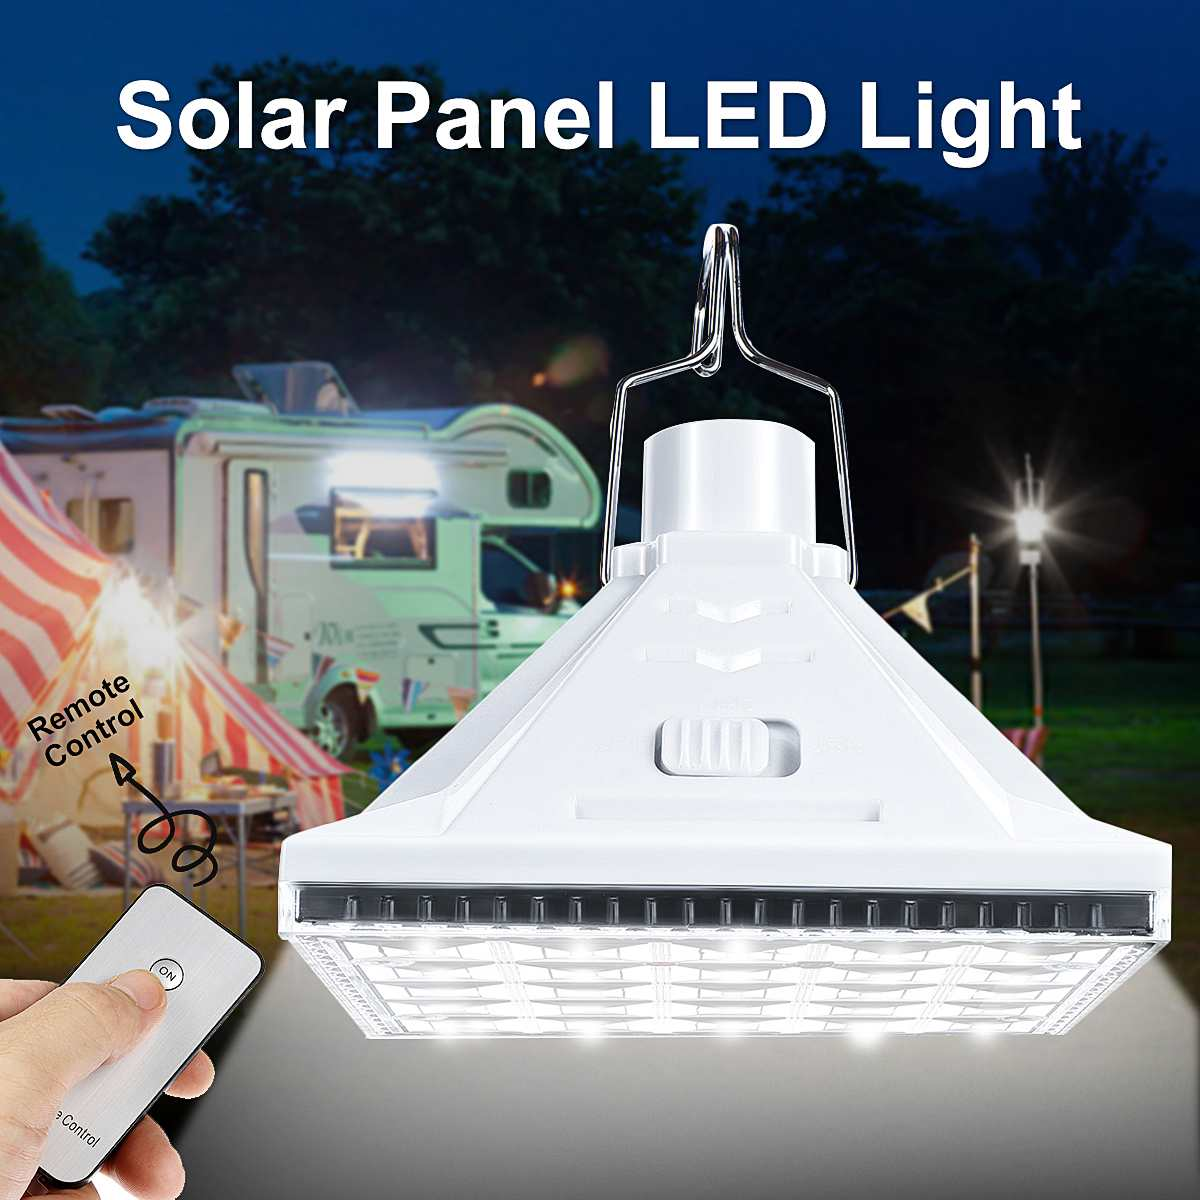 25 LED USB Rechargeable Solar Power Outdoor Camping Light Remote Control Hiking Night Lamp Tent Lantern Lights For Phone